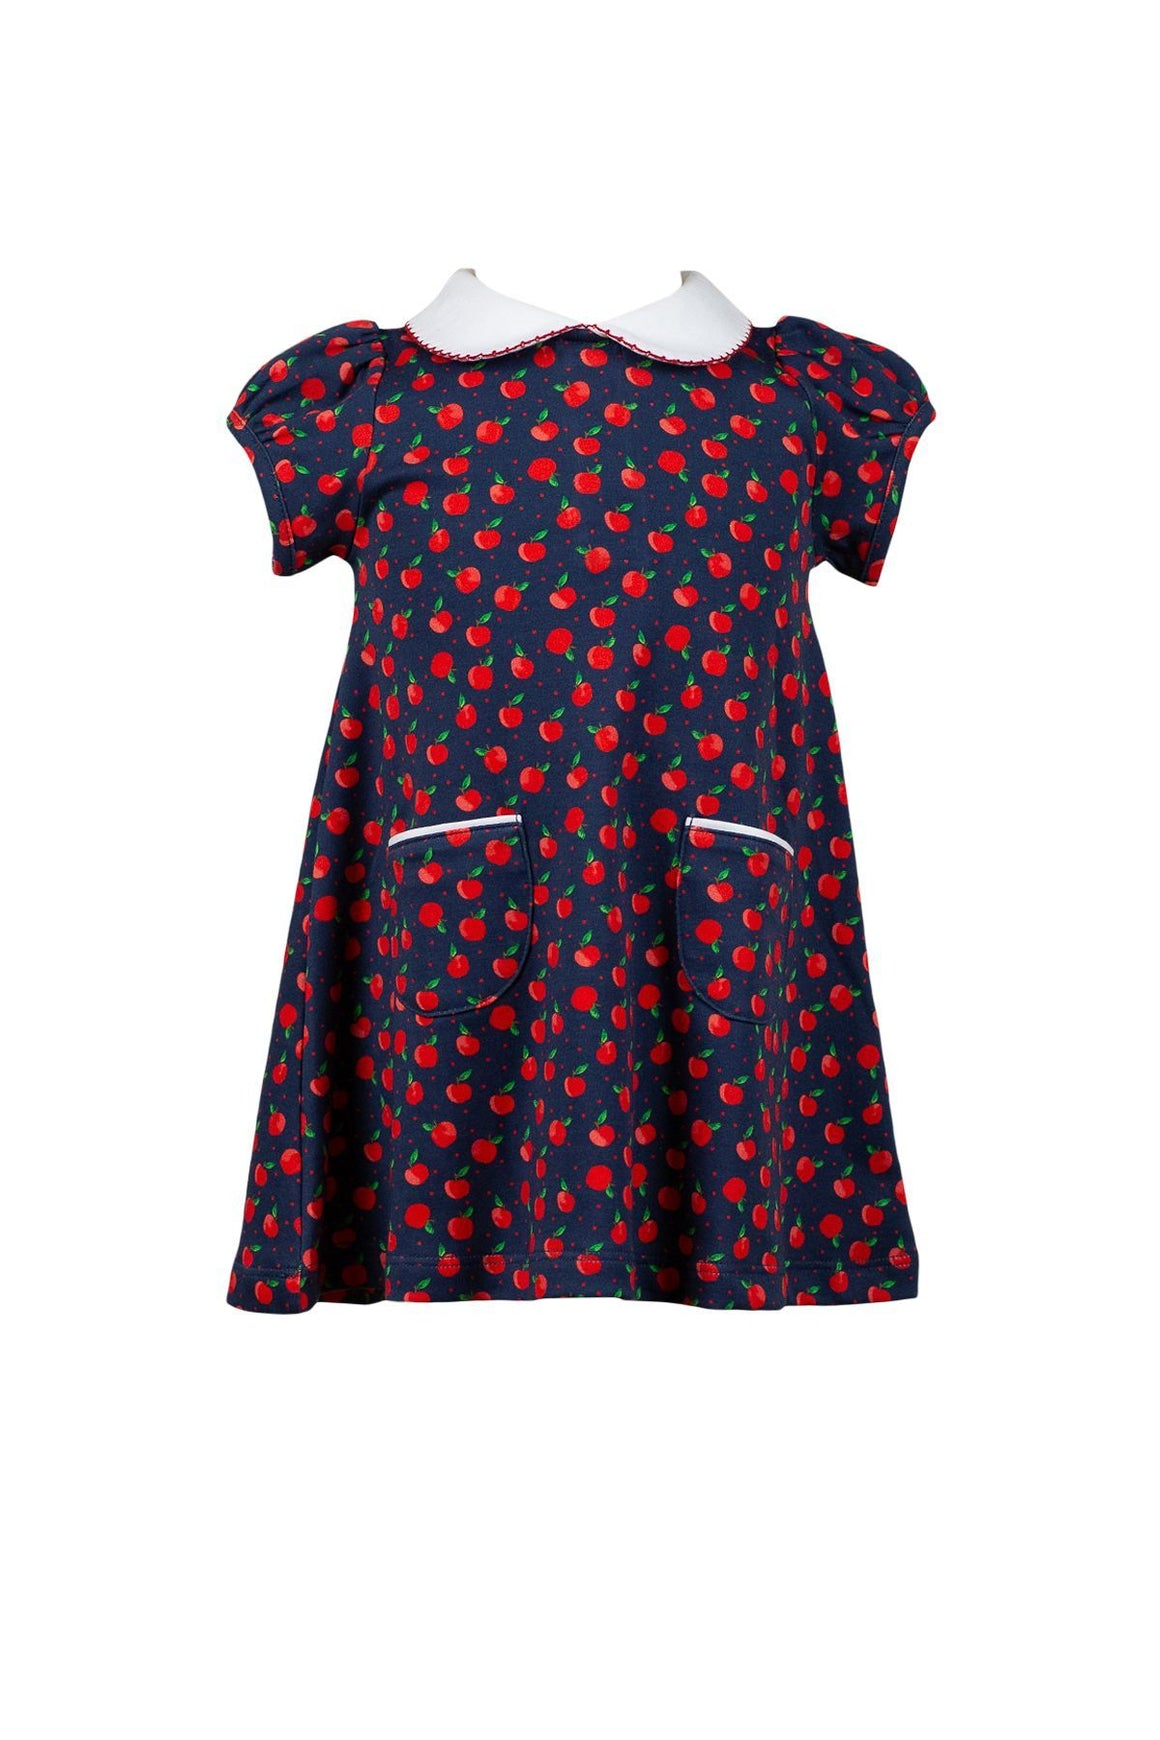 The Proper Peony Apparel The Proper Peony Parkside Collection Archer Apples A-Line Dress